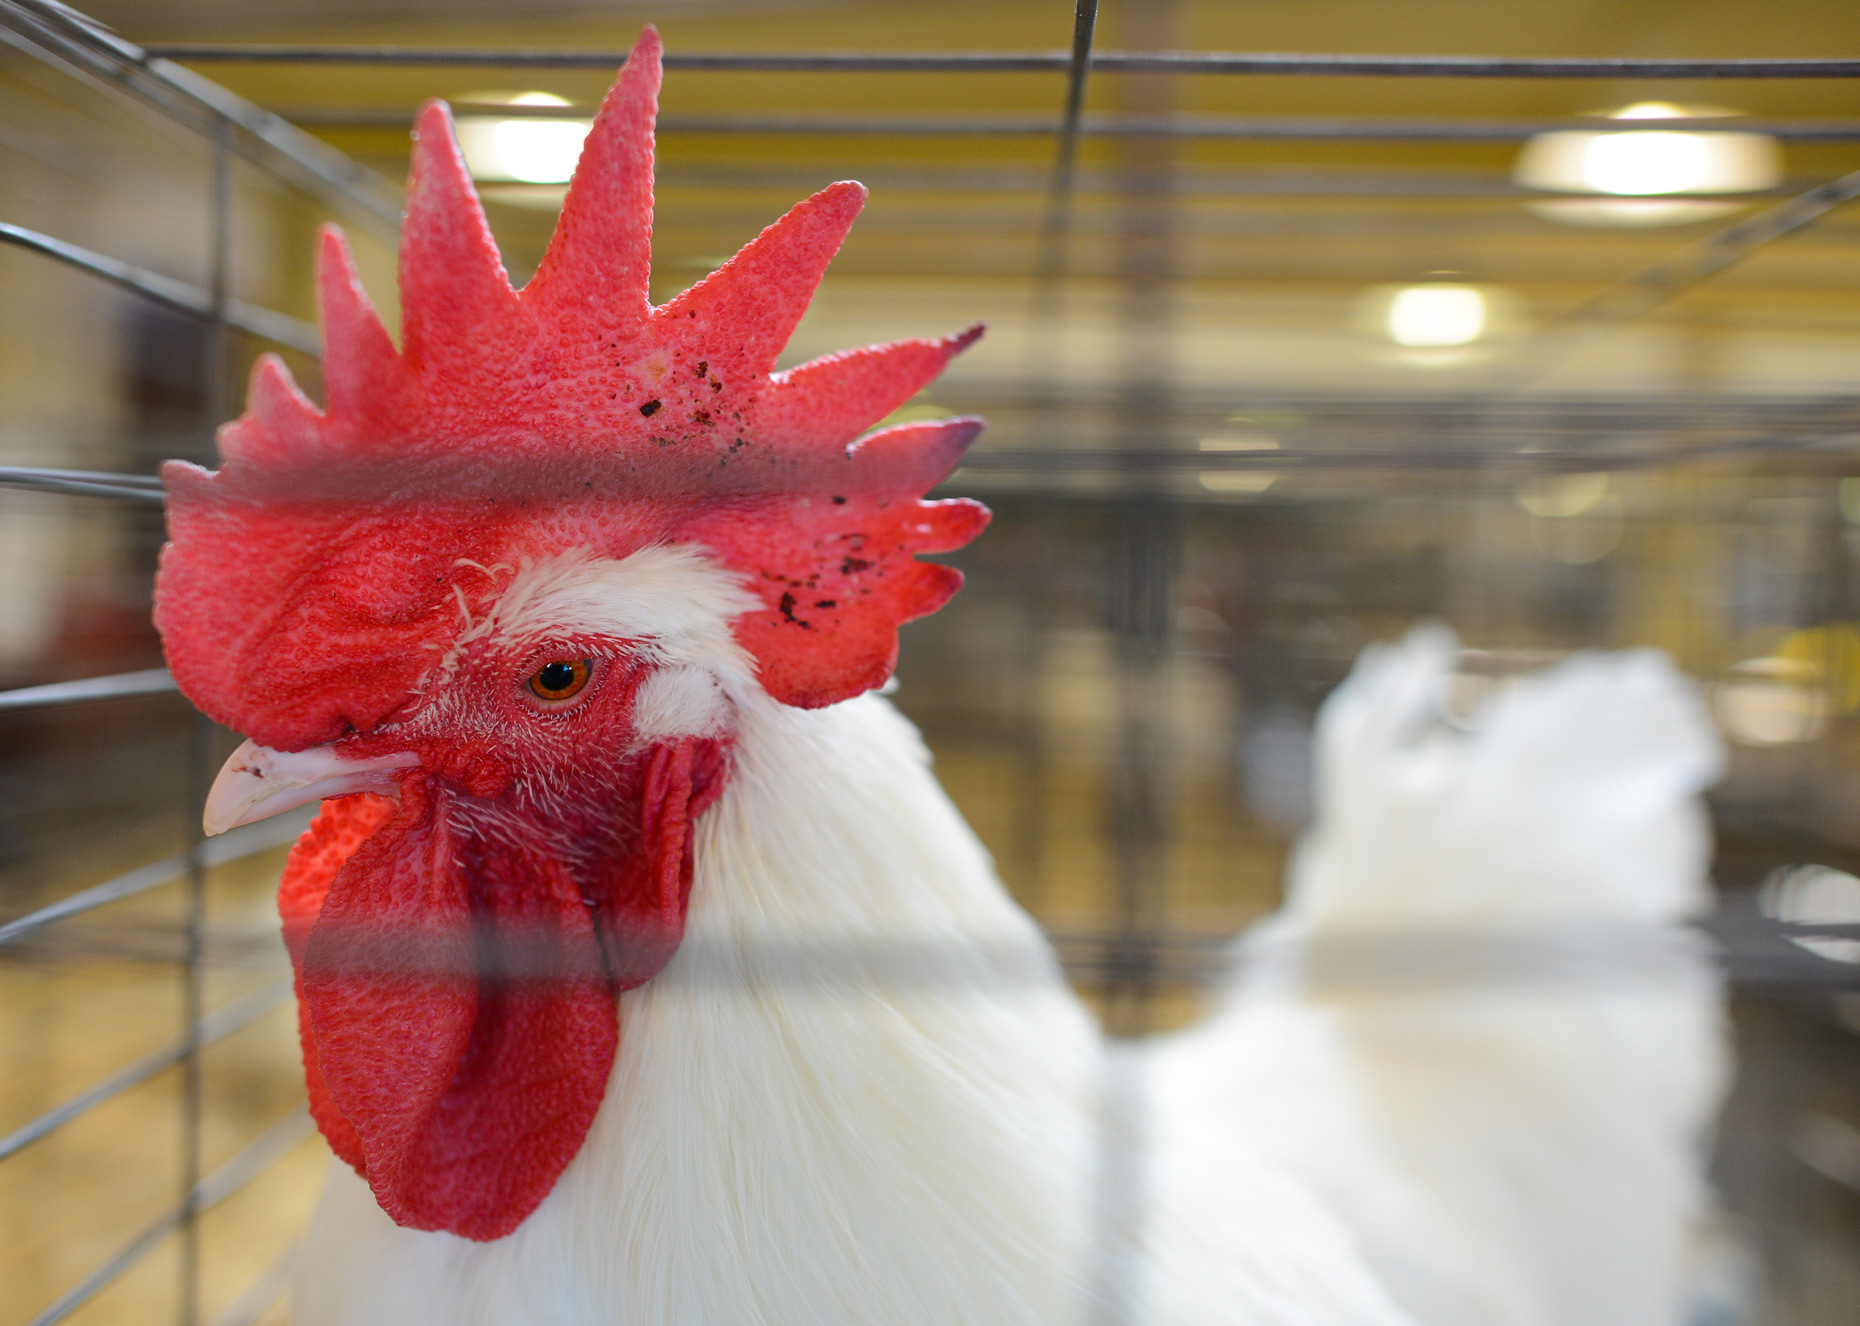 Poultry show at The State Fair of Texas. Photography by Kevin Brown